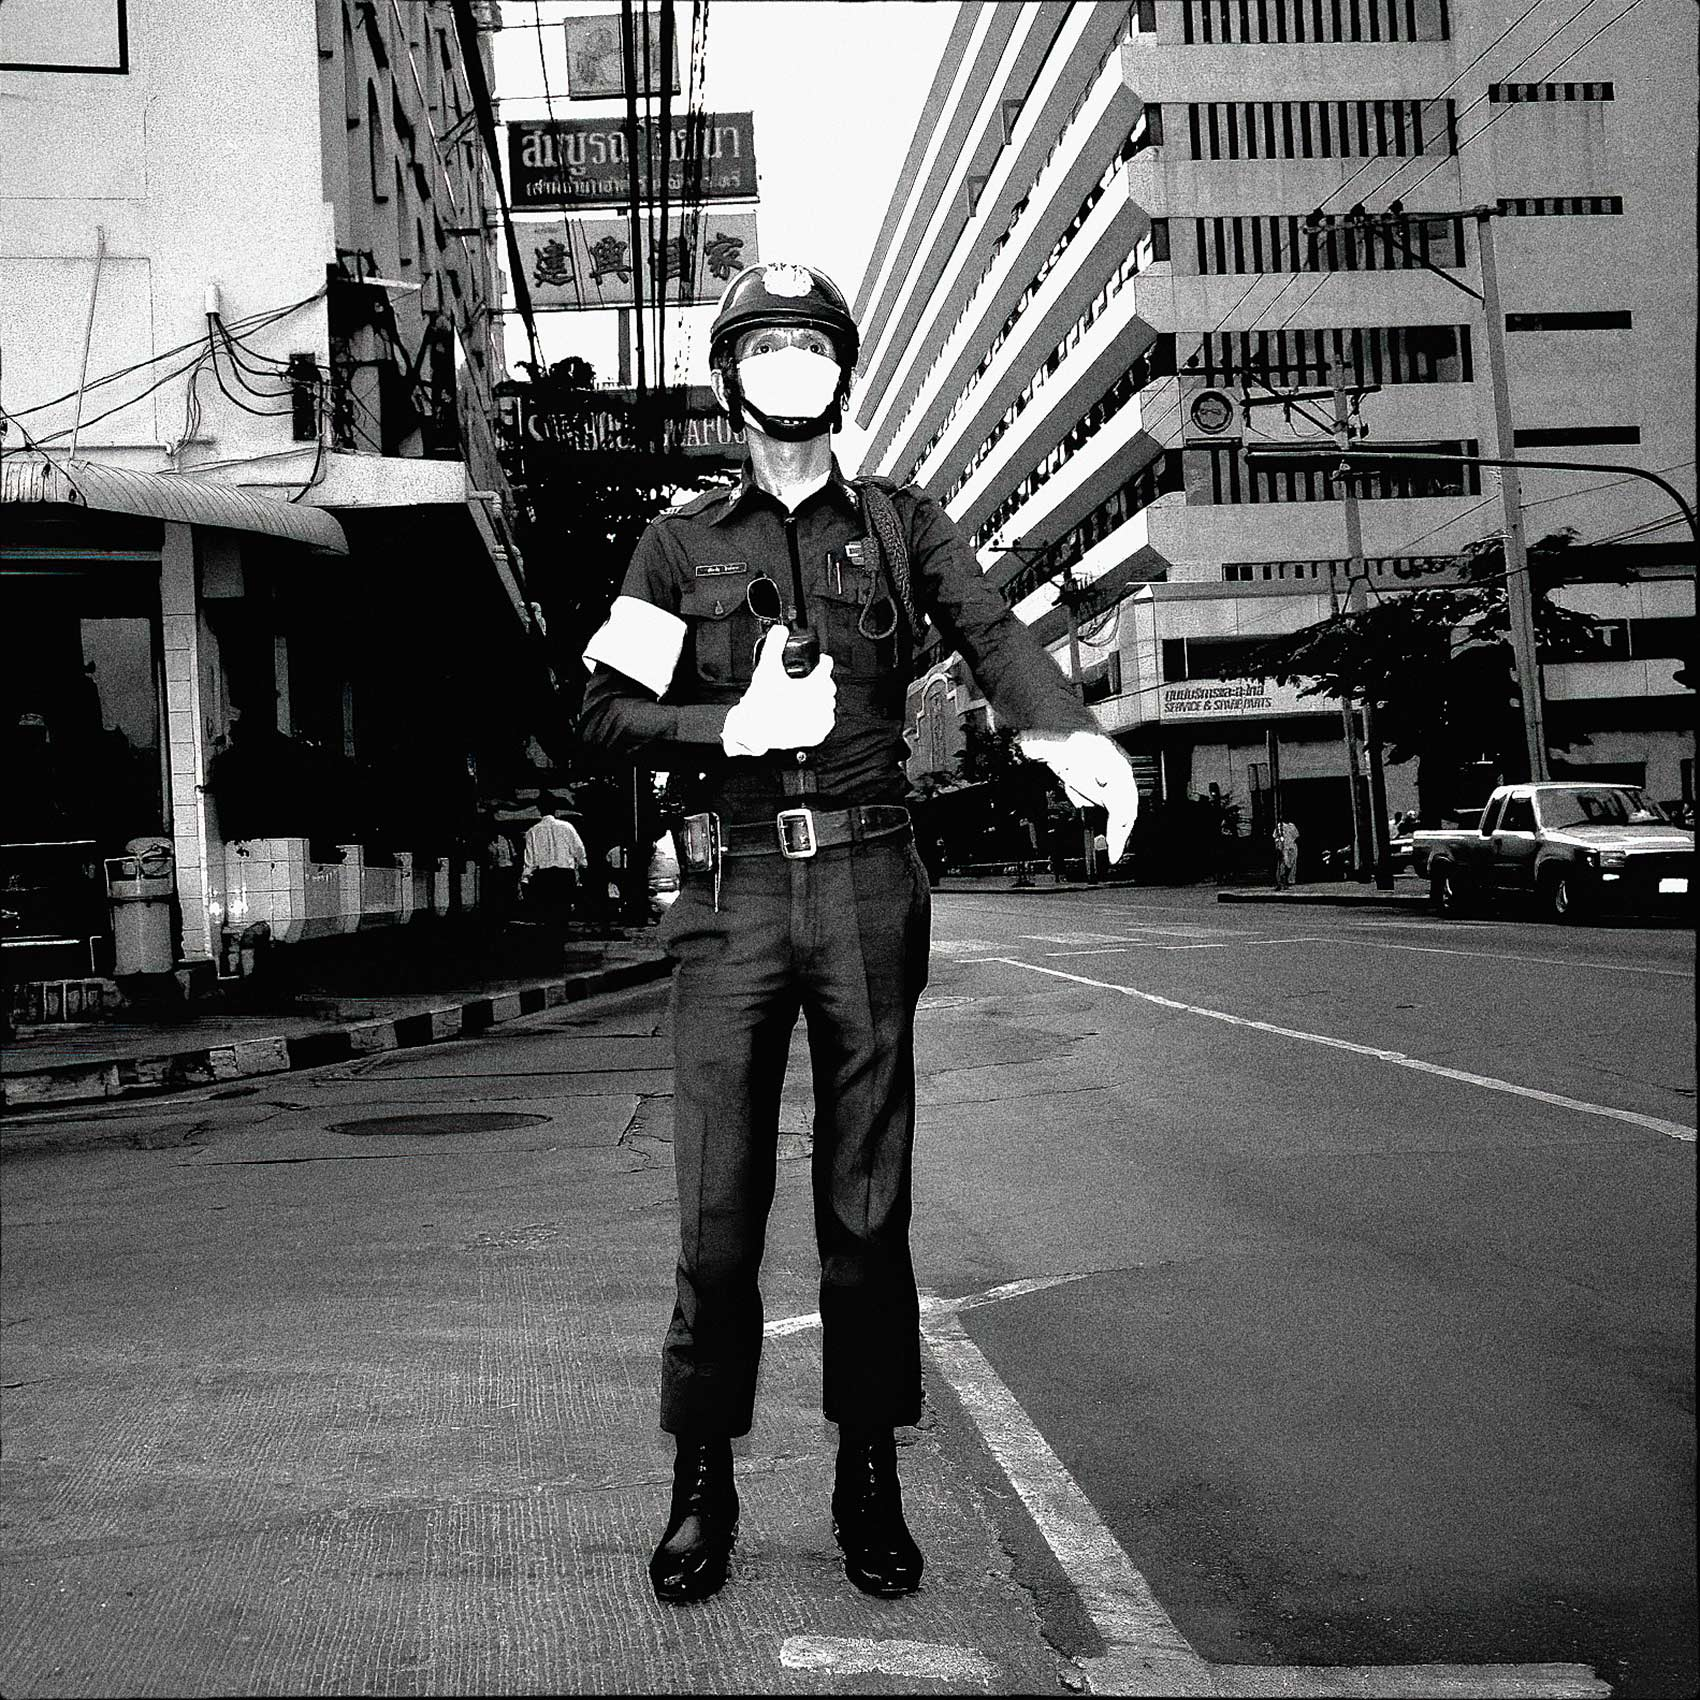 a-bangkok-policeman-wearing-a-face-mask-directs-traffic-in-the-downtown-core-of-the-city